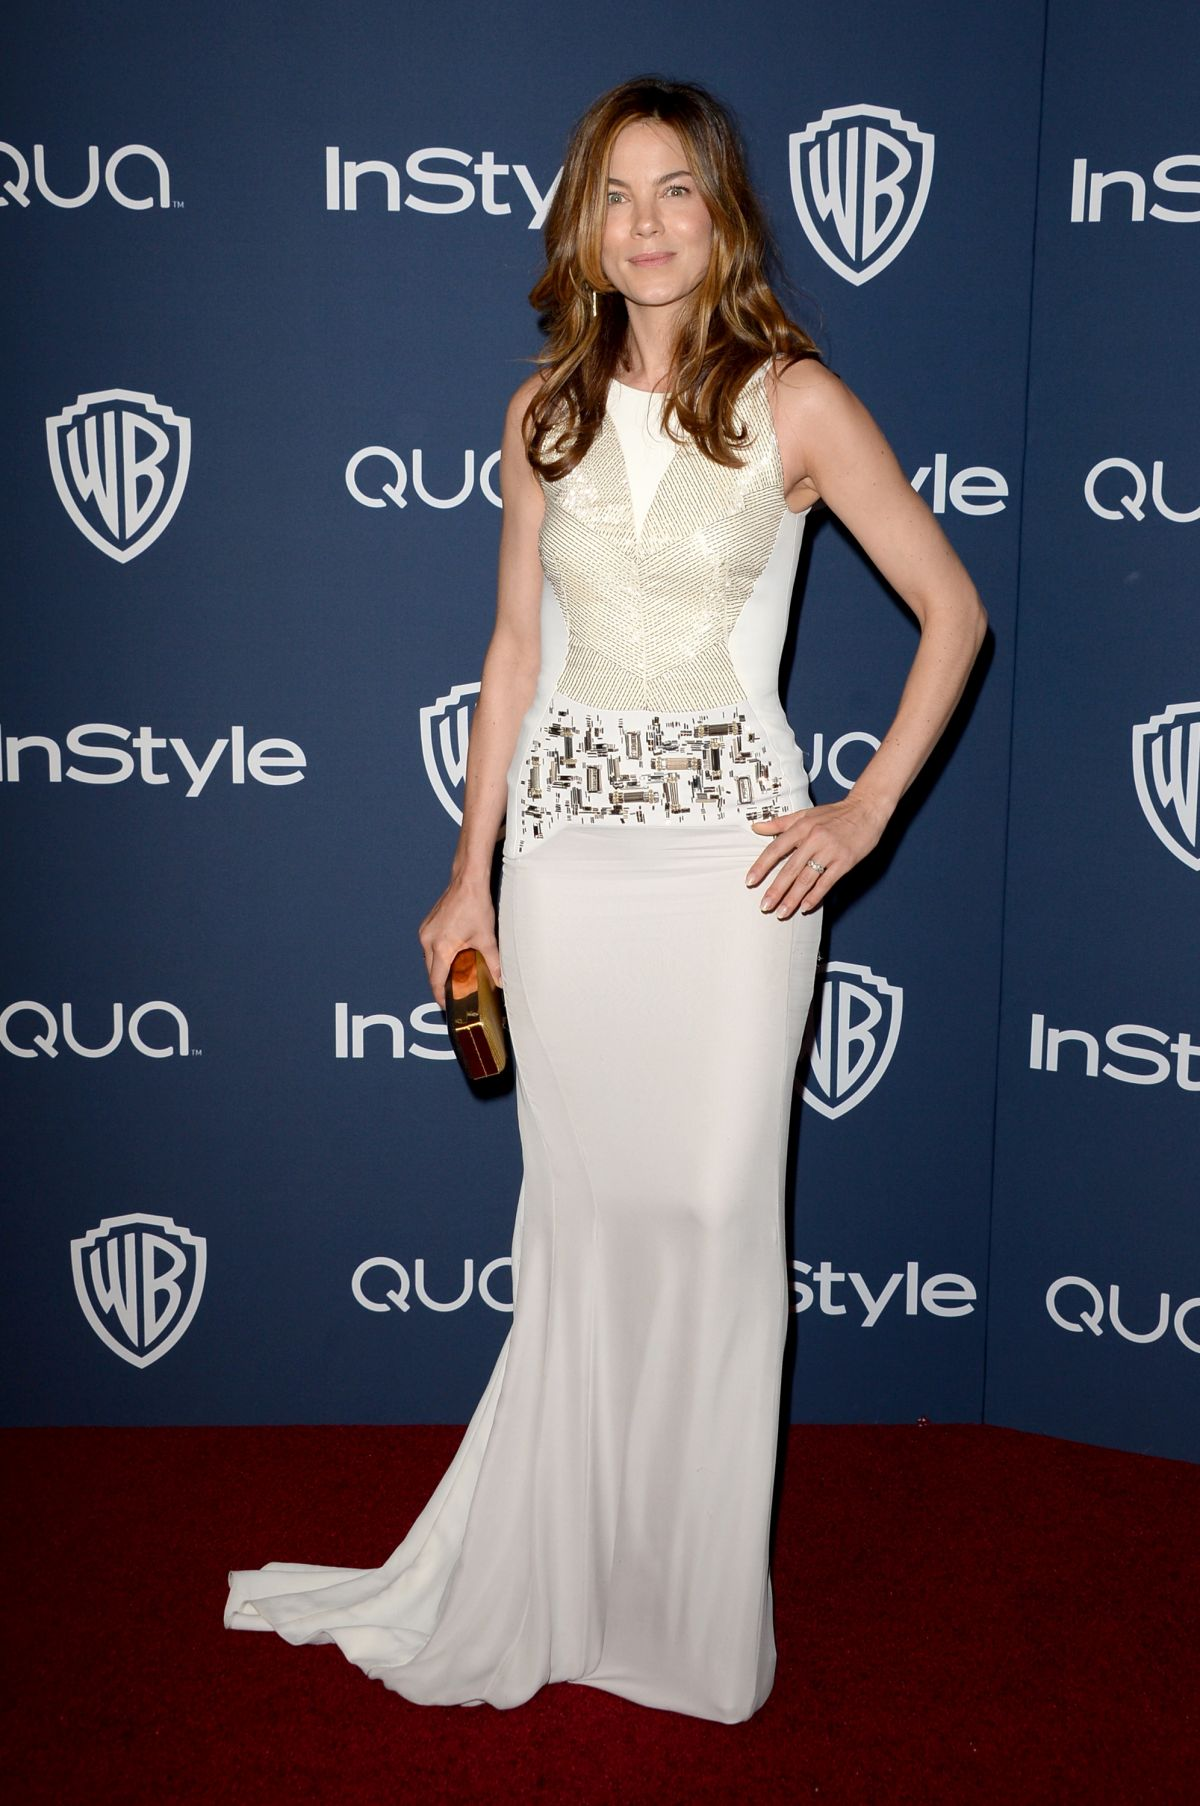 MICHELLE MONAGHAN at Instyle and Warner Bros. Golden Globes Afterparty